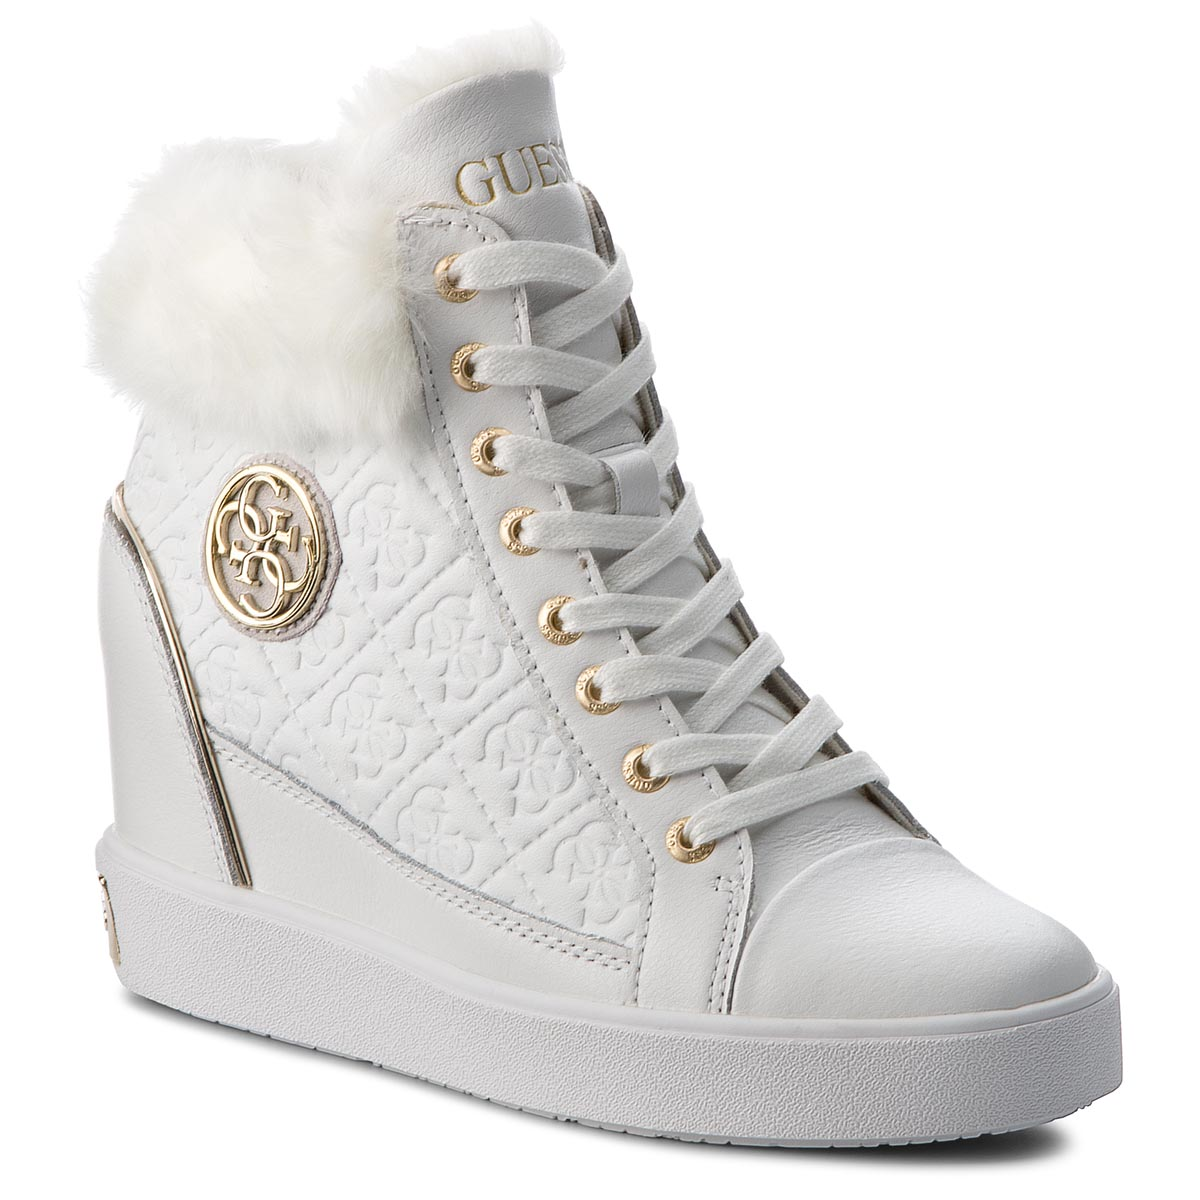 Sneakers GUESS - FLFRR3 LEP12 WHITE